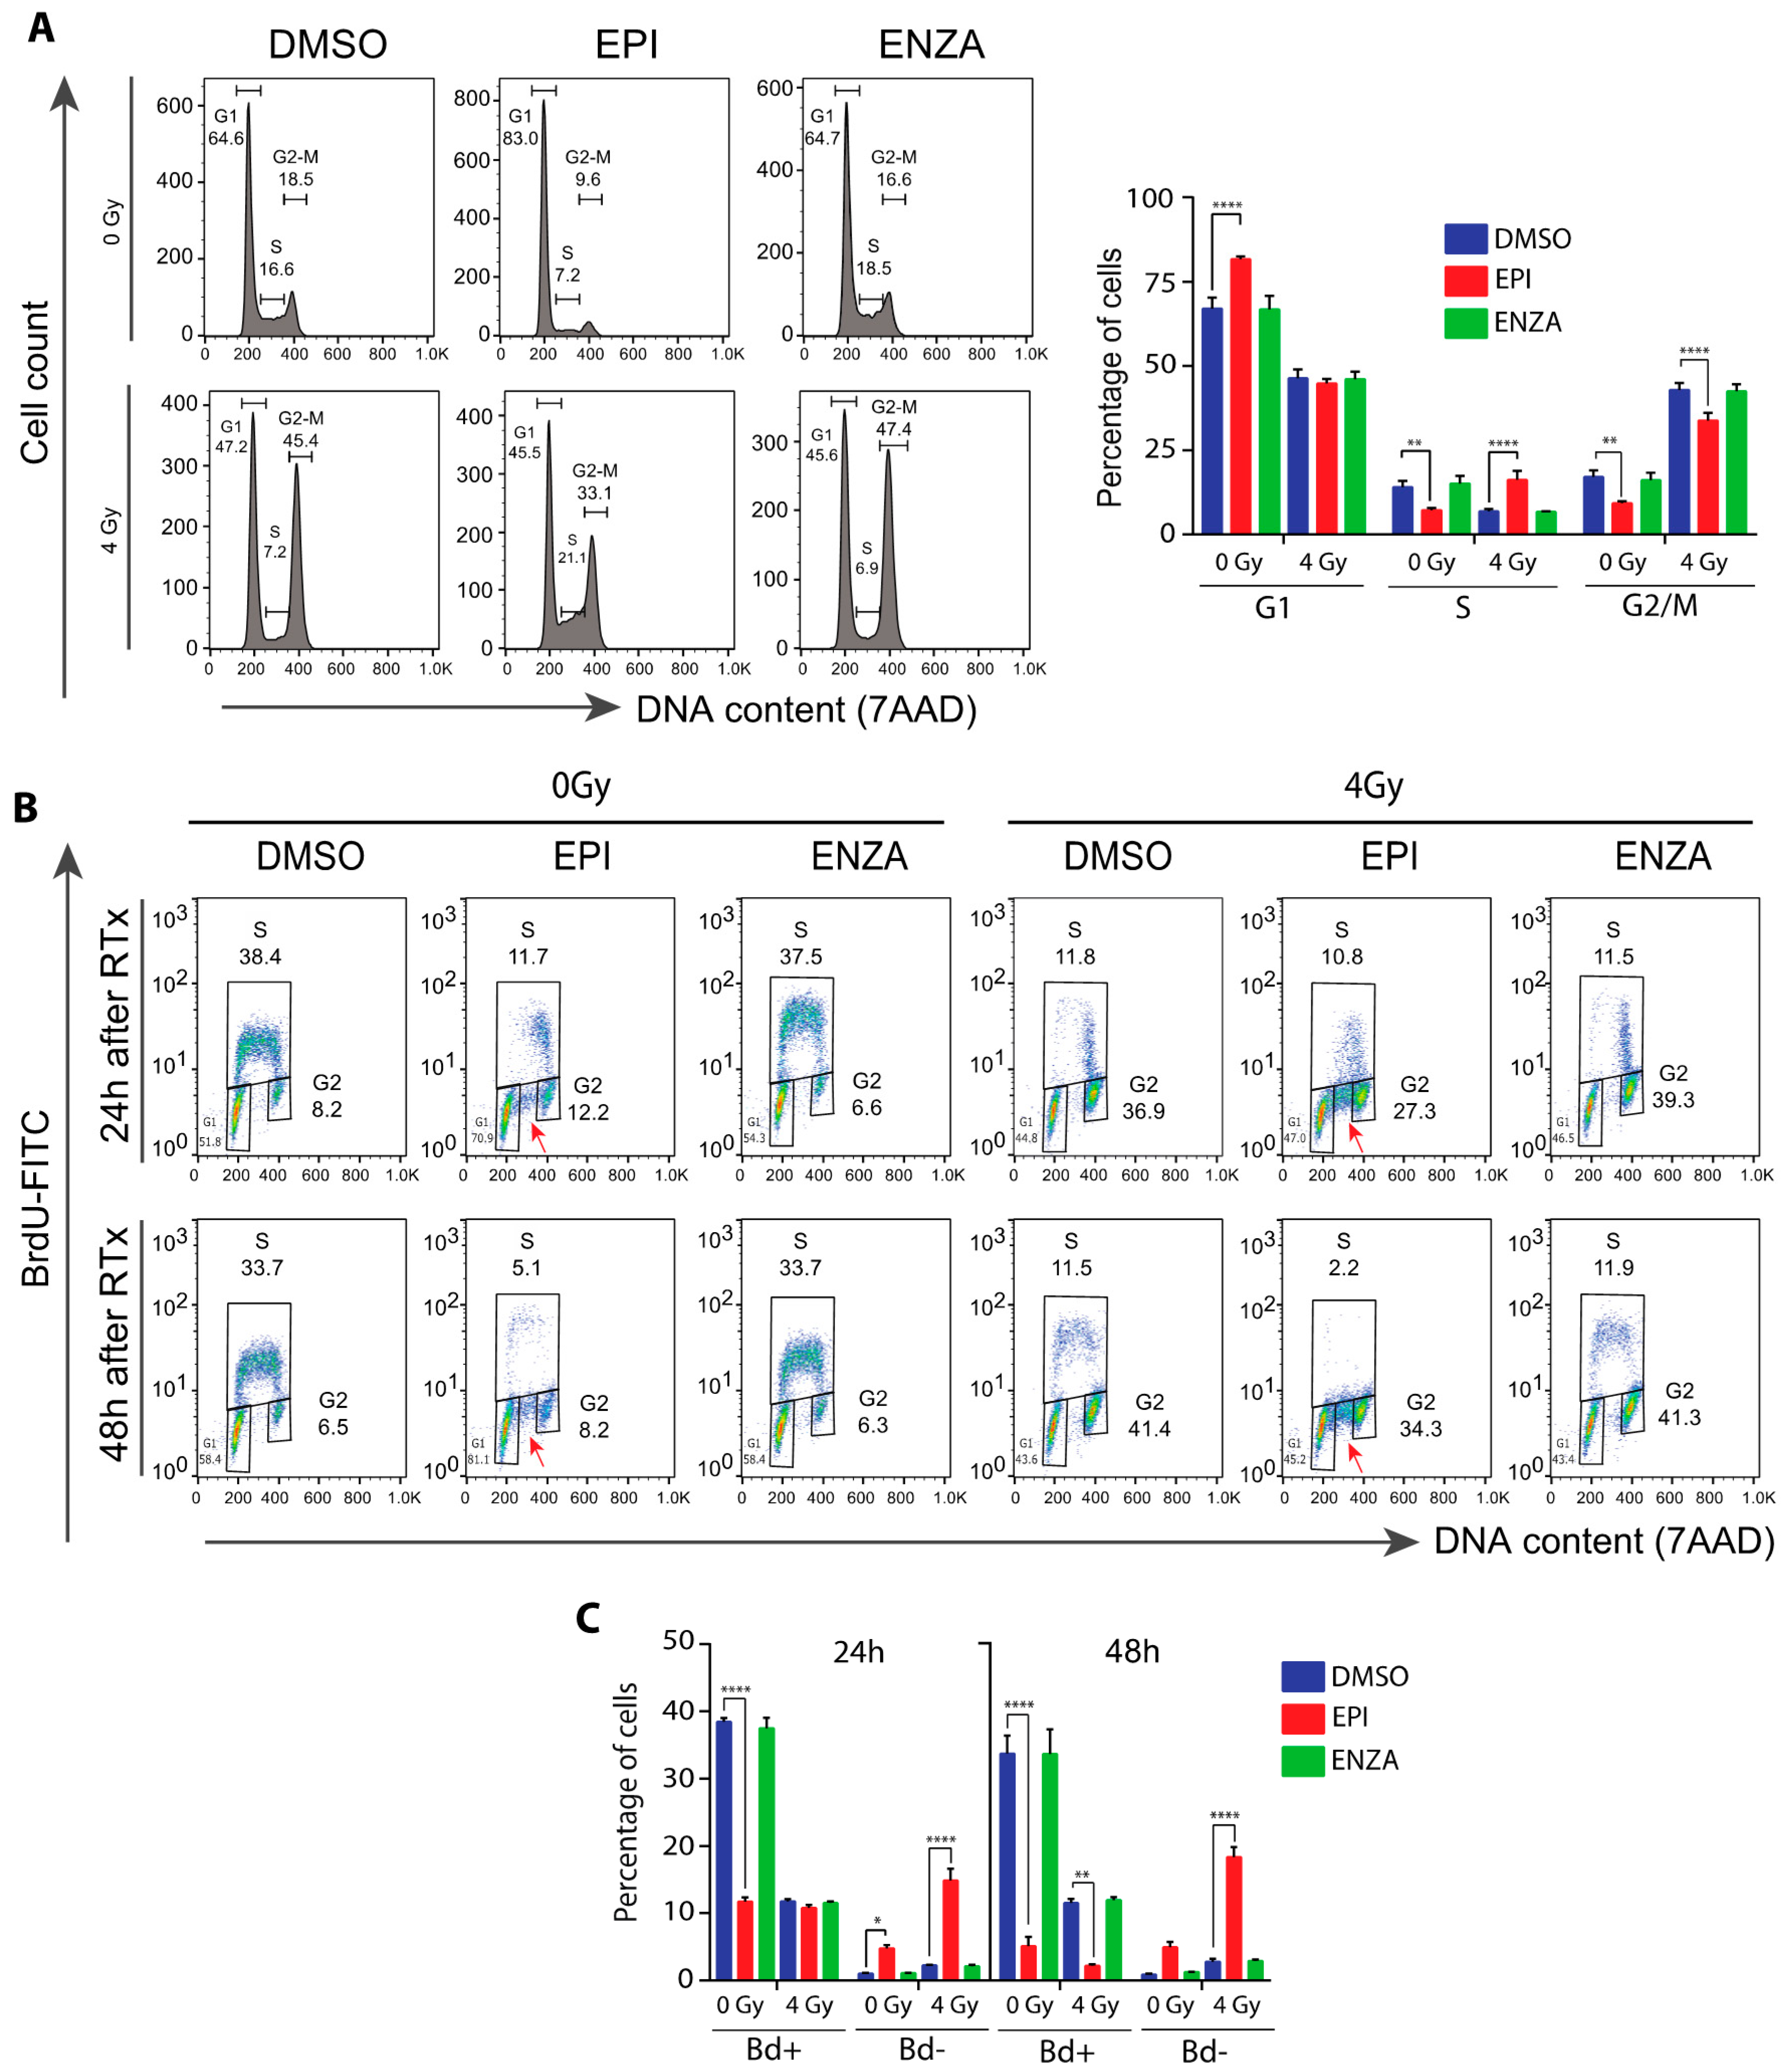 Cancers Free Full Text Ralaniten Sensitizes Enzalutamide Resistant Prostate Cancer To Ionizing Radiation In Prostate Cancer Cells That Express Androgen Receptor Splice Variants Html